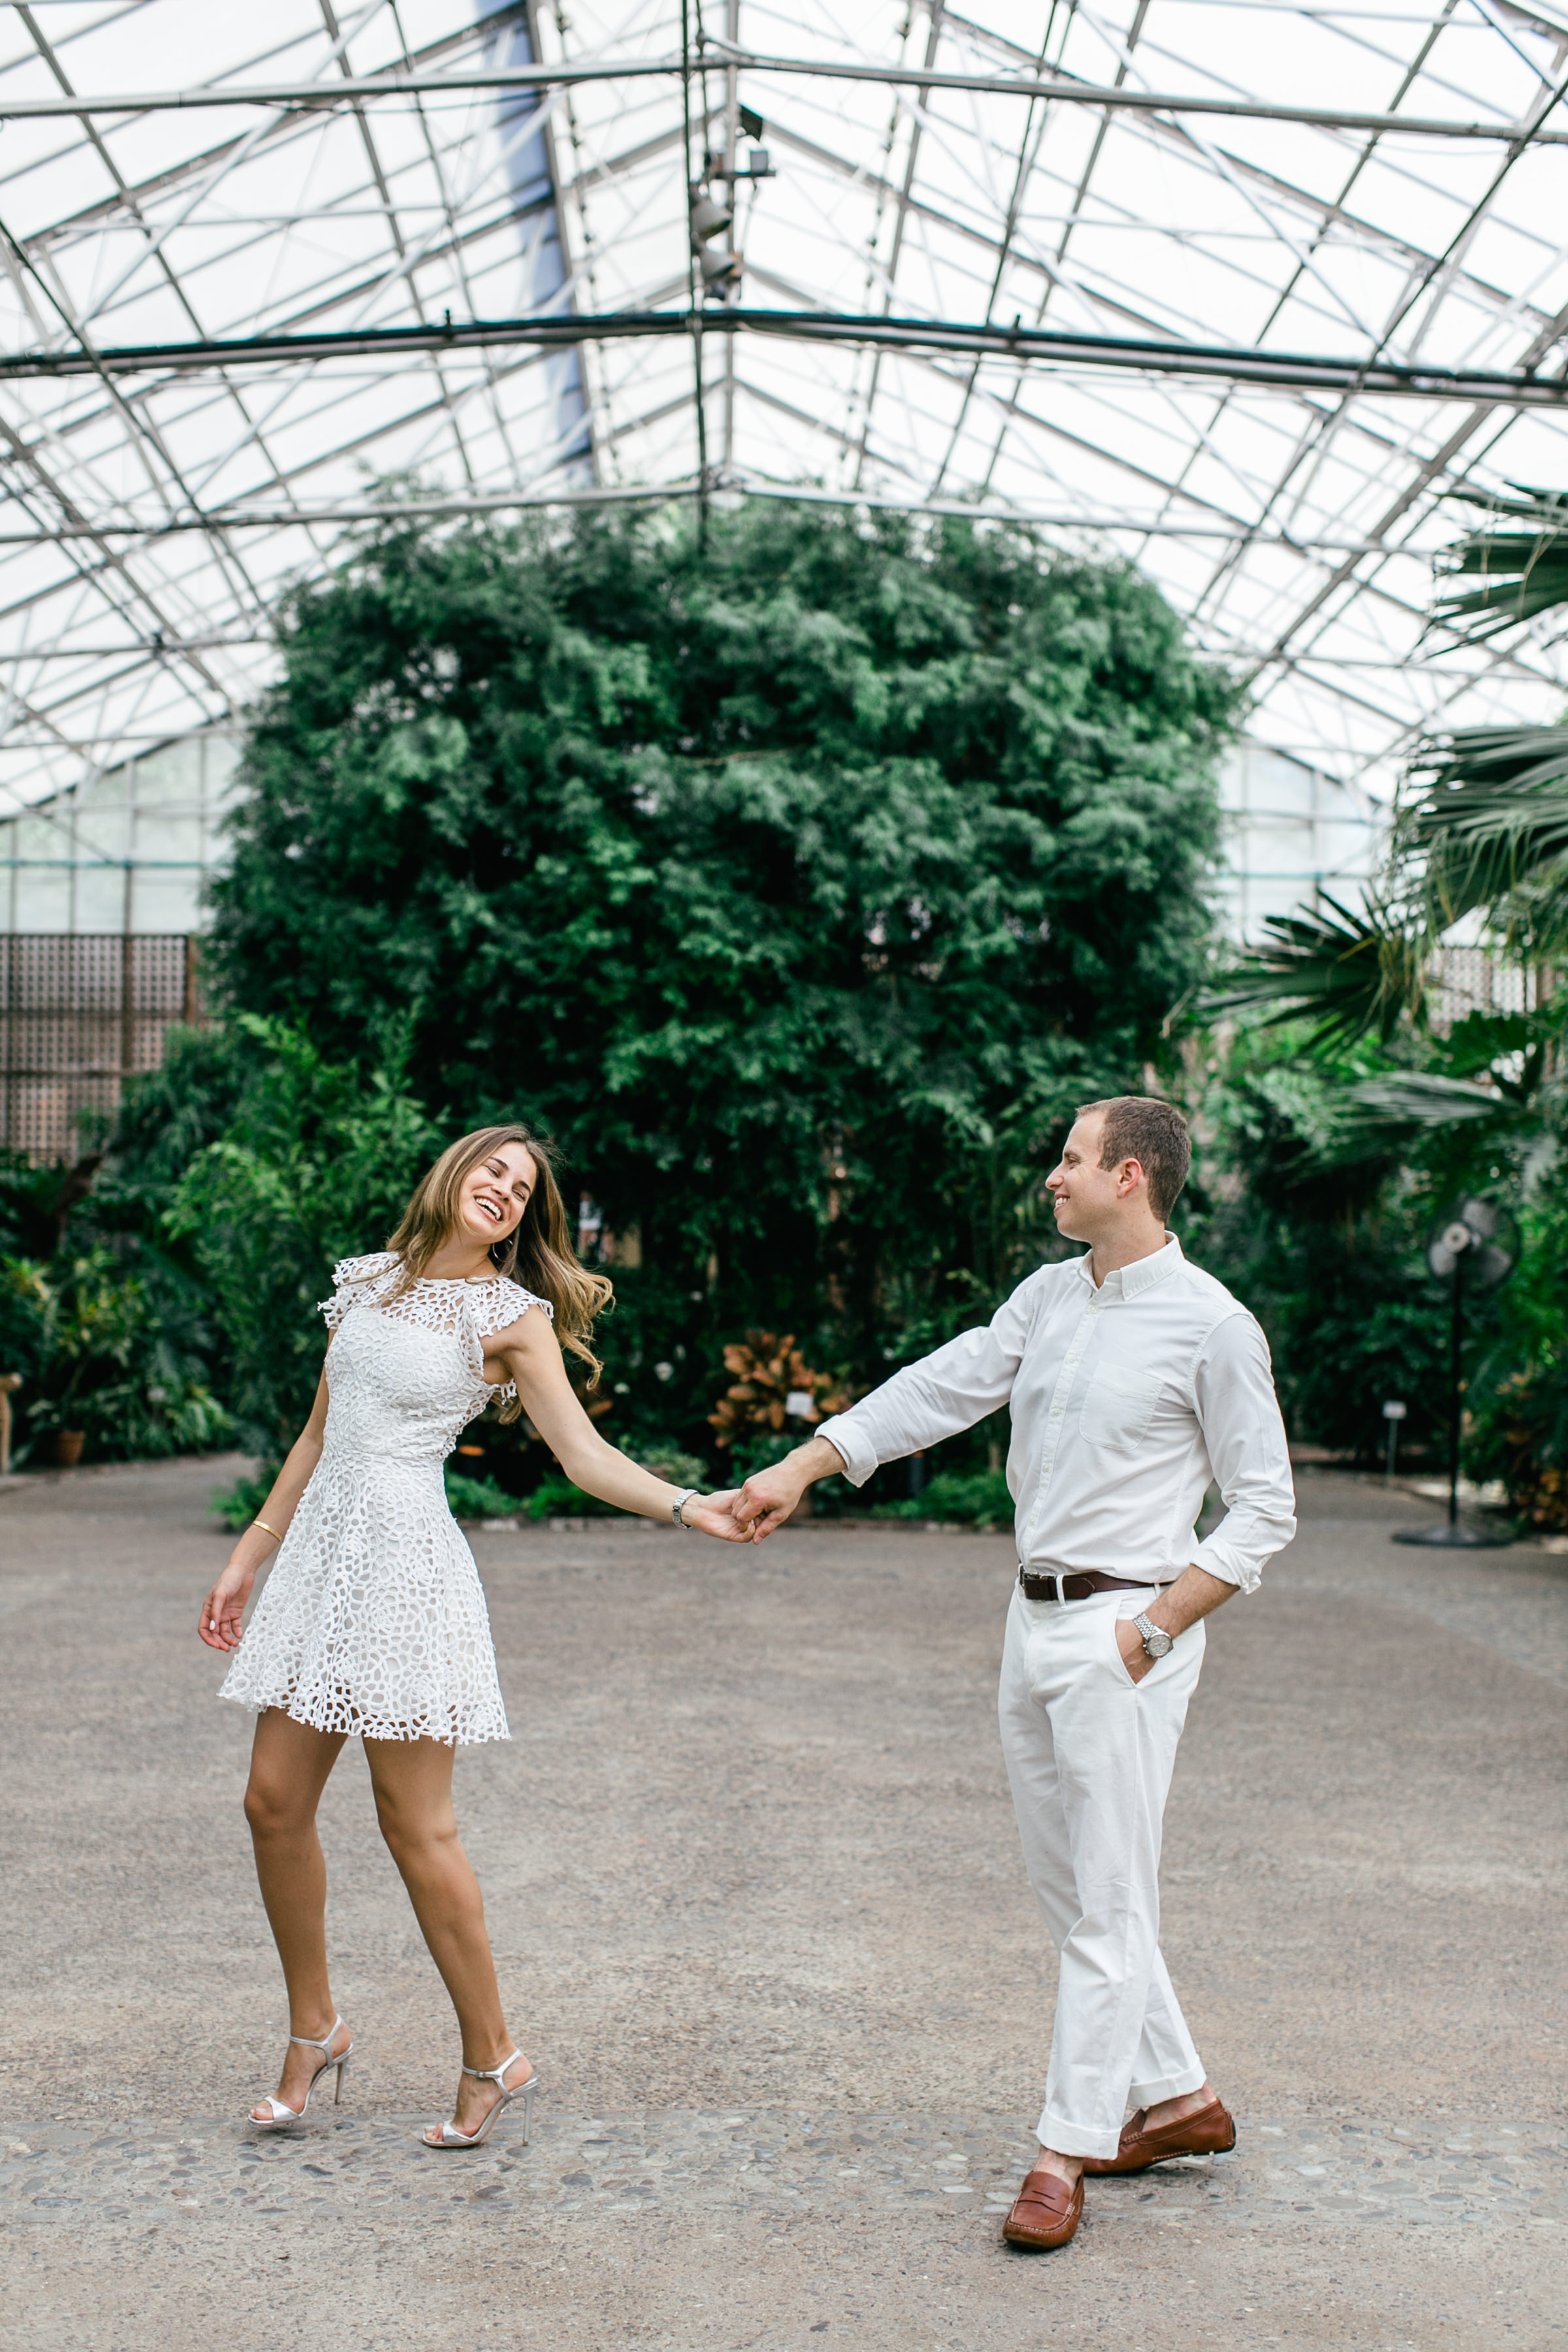 photography-family-natural-candid-engaged-fairmount-philadelphia-wedding-horticultural center-modern-lifestyle-10.JPG